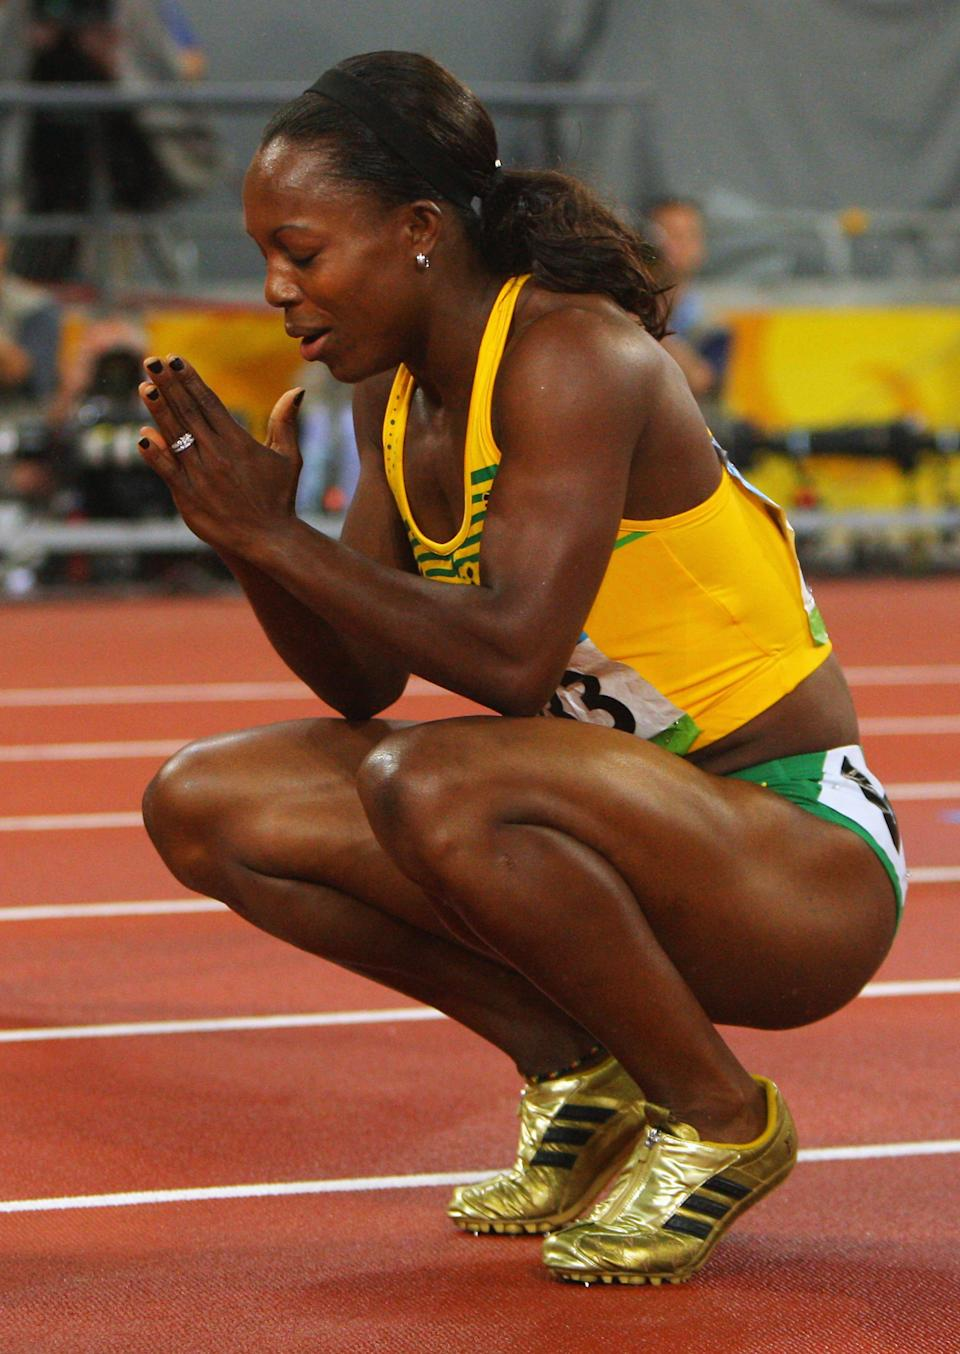 BEIJING - AUGUST 21: Veronica Campbell-Brown of Jamaica celebrates winning the Women's 200m Final and the gold medal held at the National Stadium during Day 13 of the Beijing 2008 Olympic Games on August 21, 2008 in Beijing, China. (Photo by Stu Forster/Getty Images)